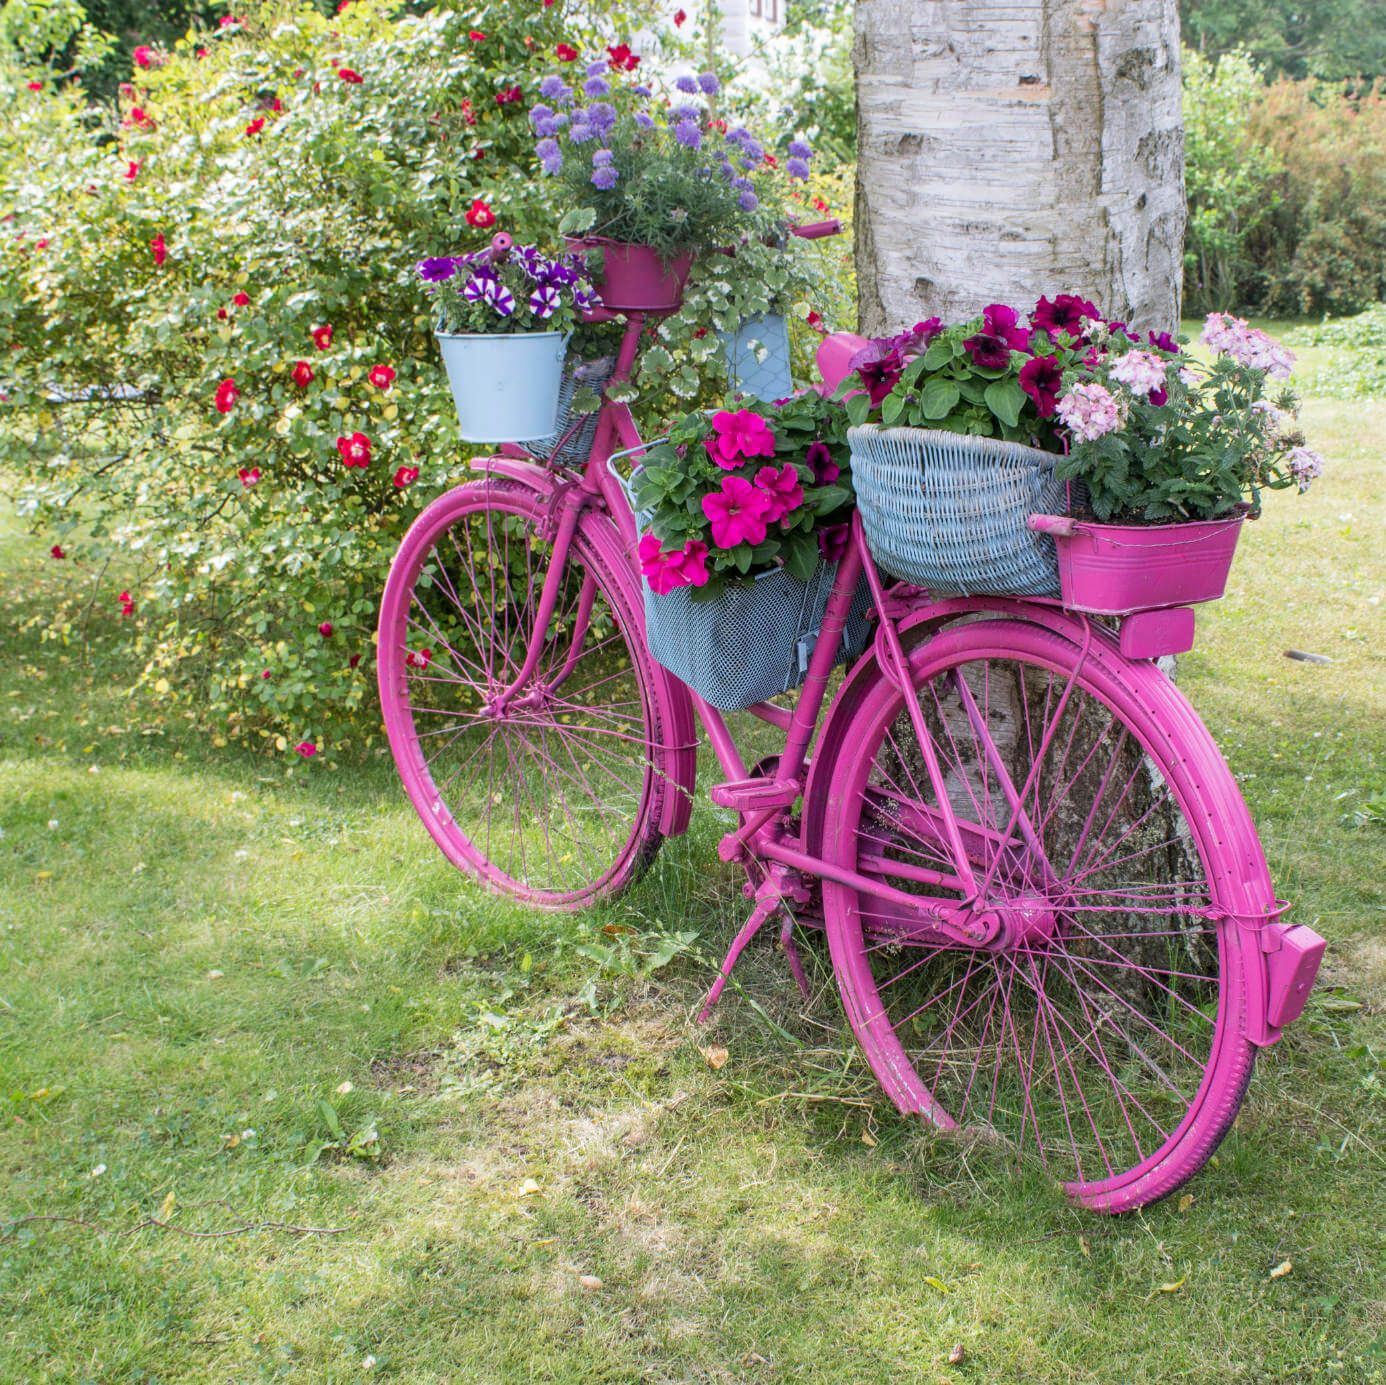 9 Bicycle Flower Planters for the Garden or Yard - Home